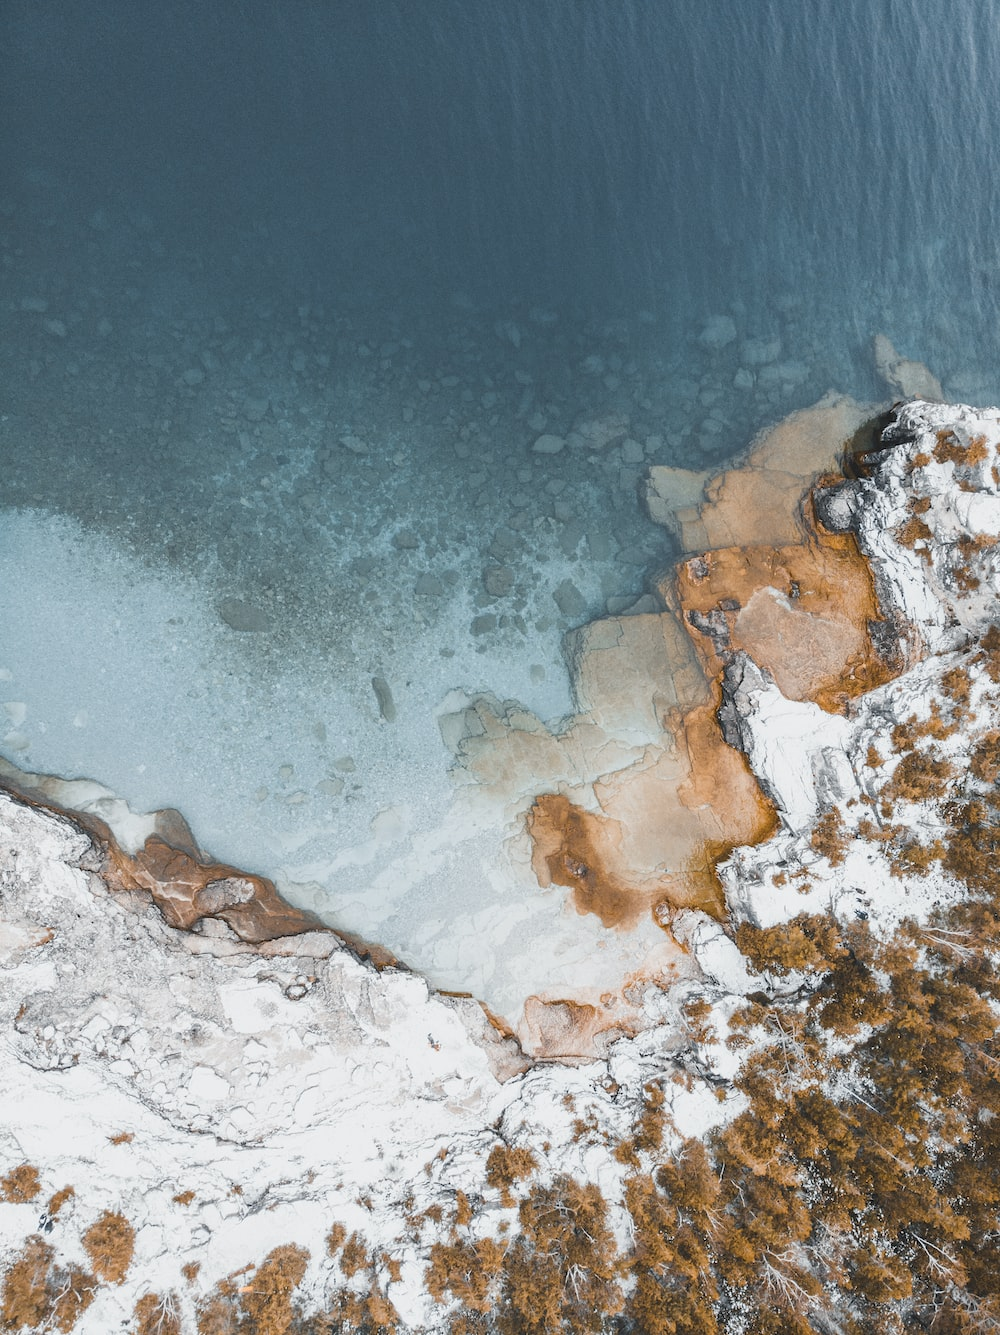 aerial photography of snow-covered cliff near body of water during daytime